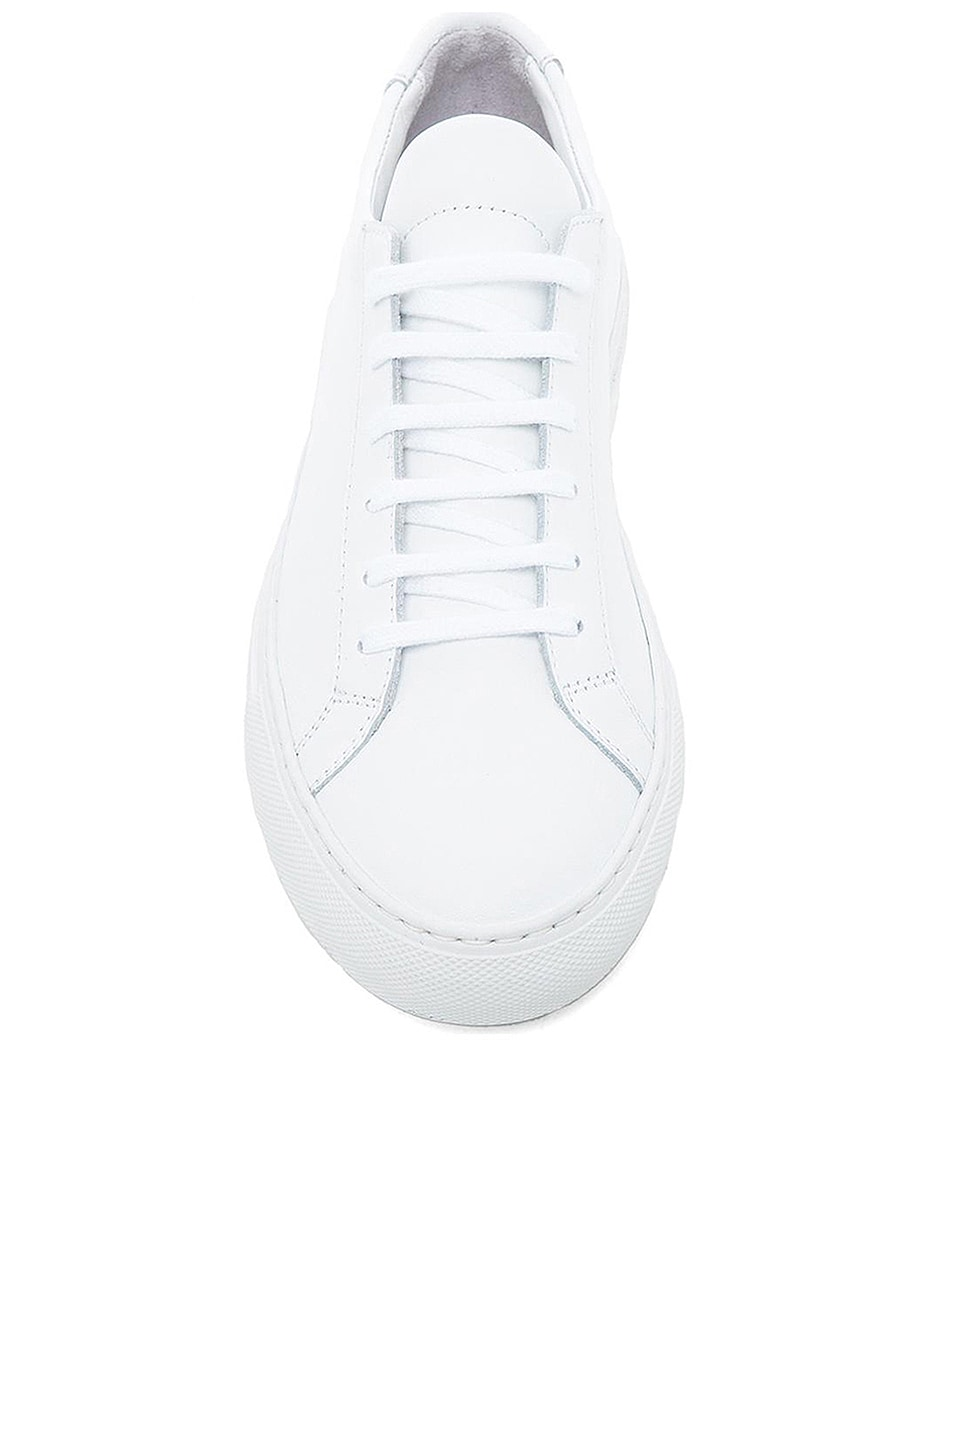 Image 3 of Common Projects Original Leather Achilles Low in White